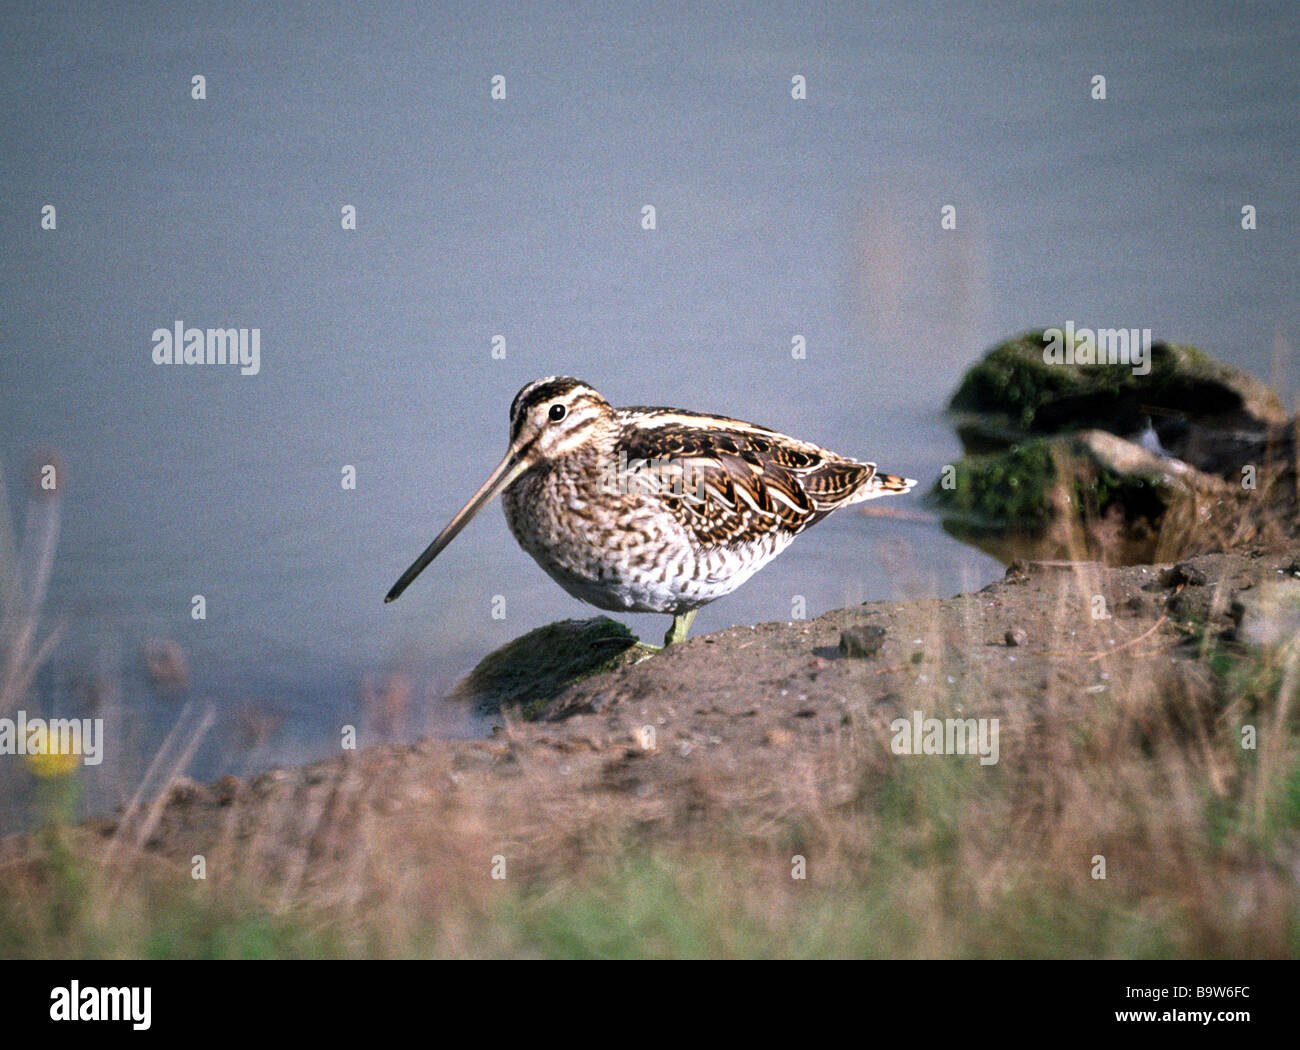 Snipe 'Gallinago gallinago' standing in shallow water by the shore - Stock Image